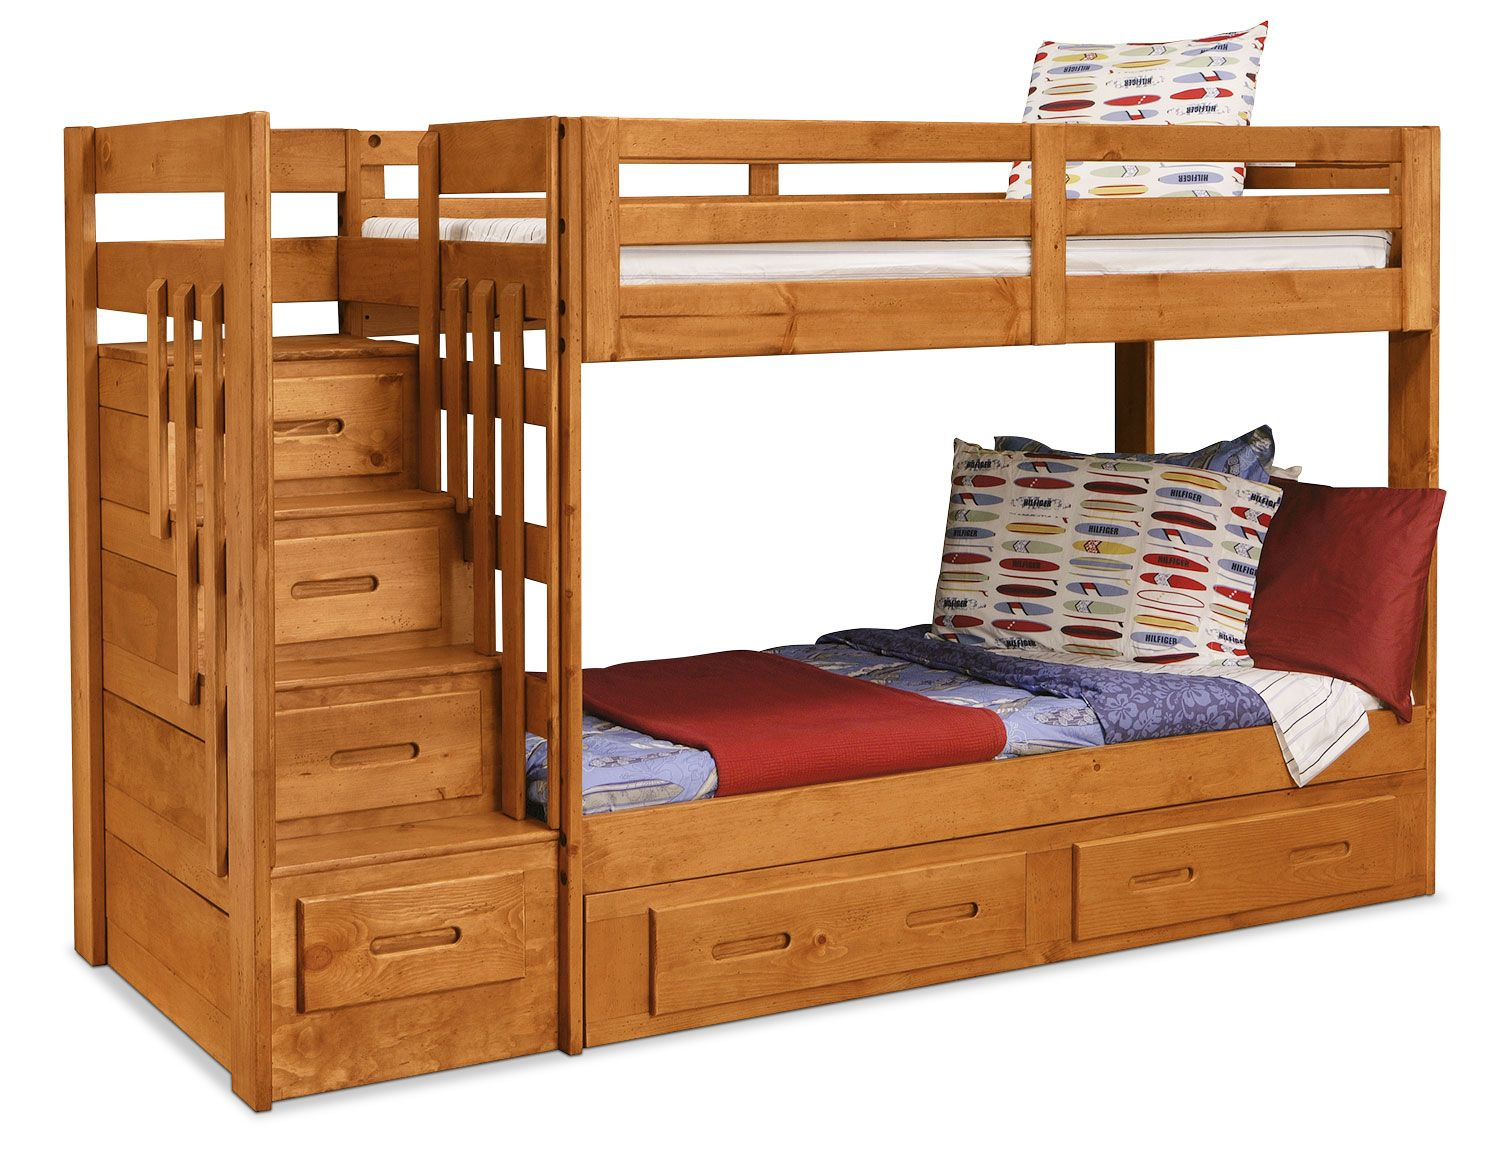 Ponderosa Staircase Bunk Bed Staircase Bunk Bed Bunk Bed And  # Muebles Ponderosa